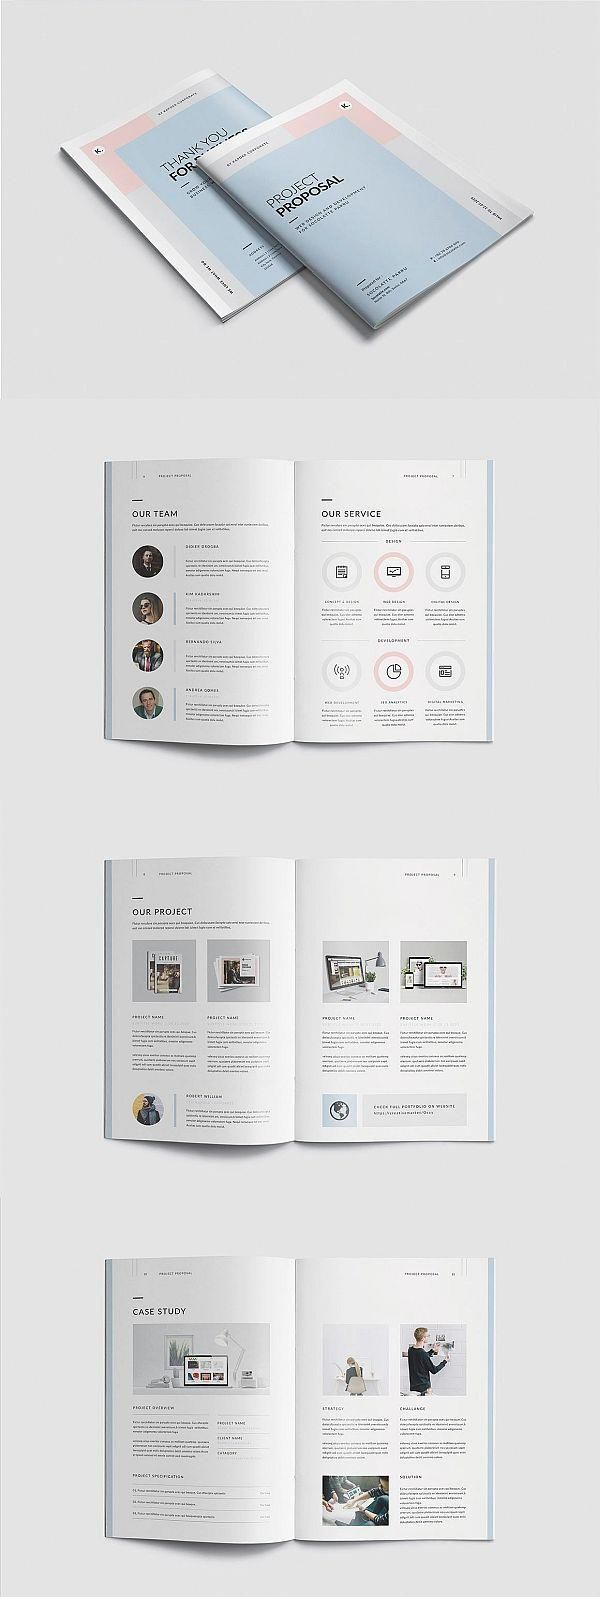 Proposal Brochure Template #proposal #brochure #template #indesign #templates